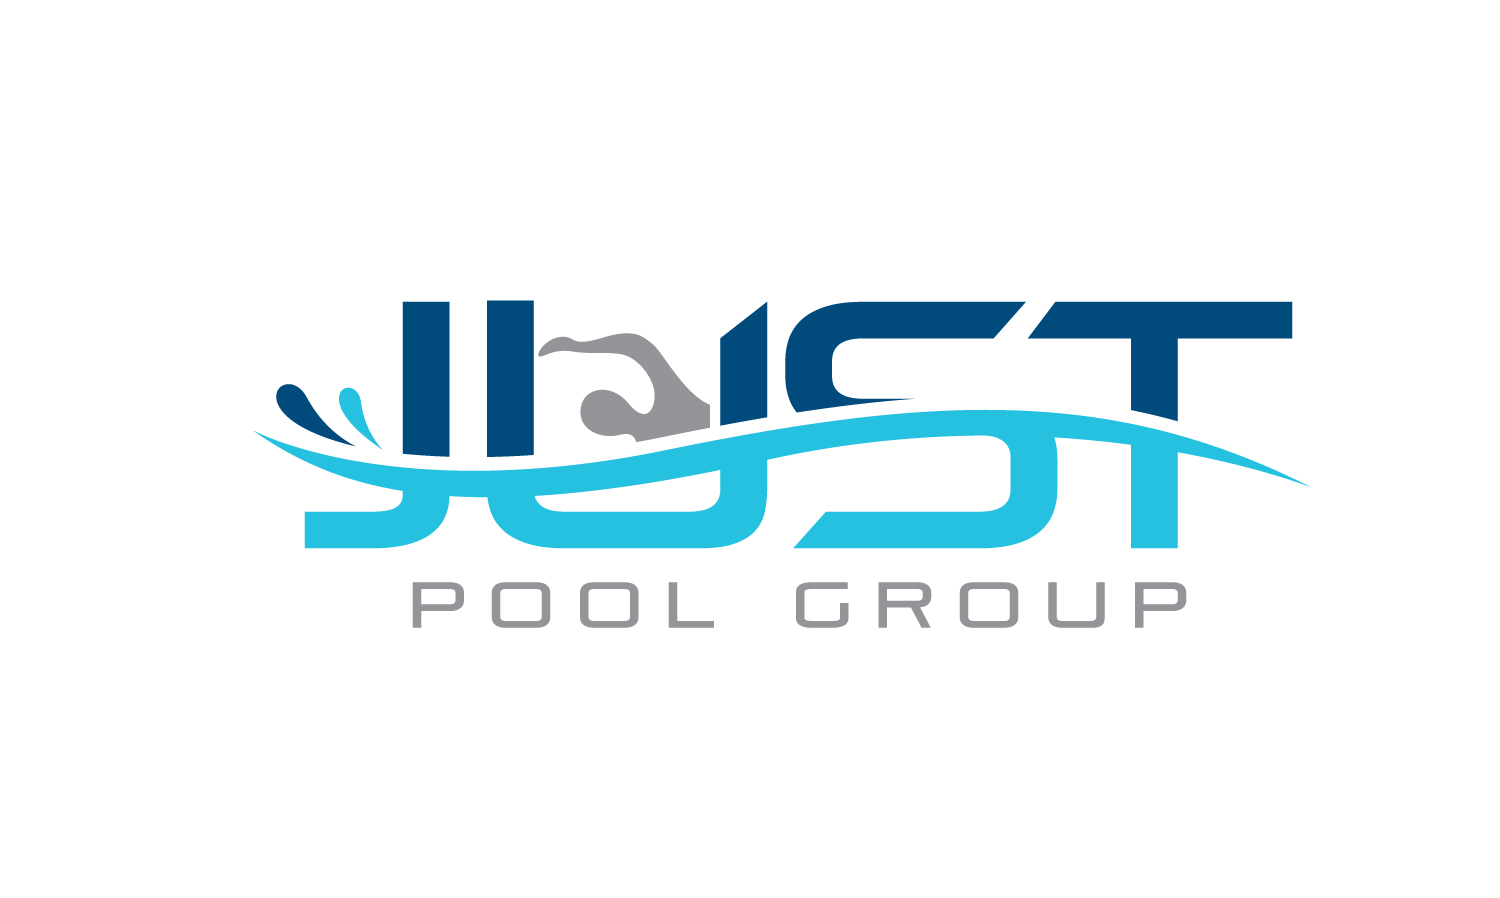 swimming pool logo designs 142 swimming pool logo designs to browse rh logo designcrowd com pool logistics pool logos for business cards